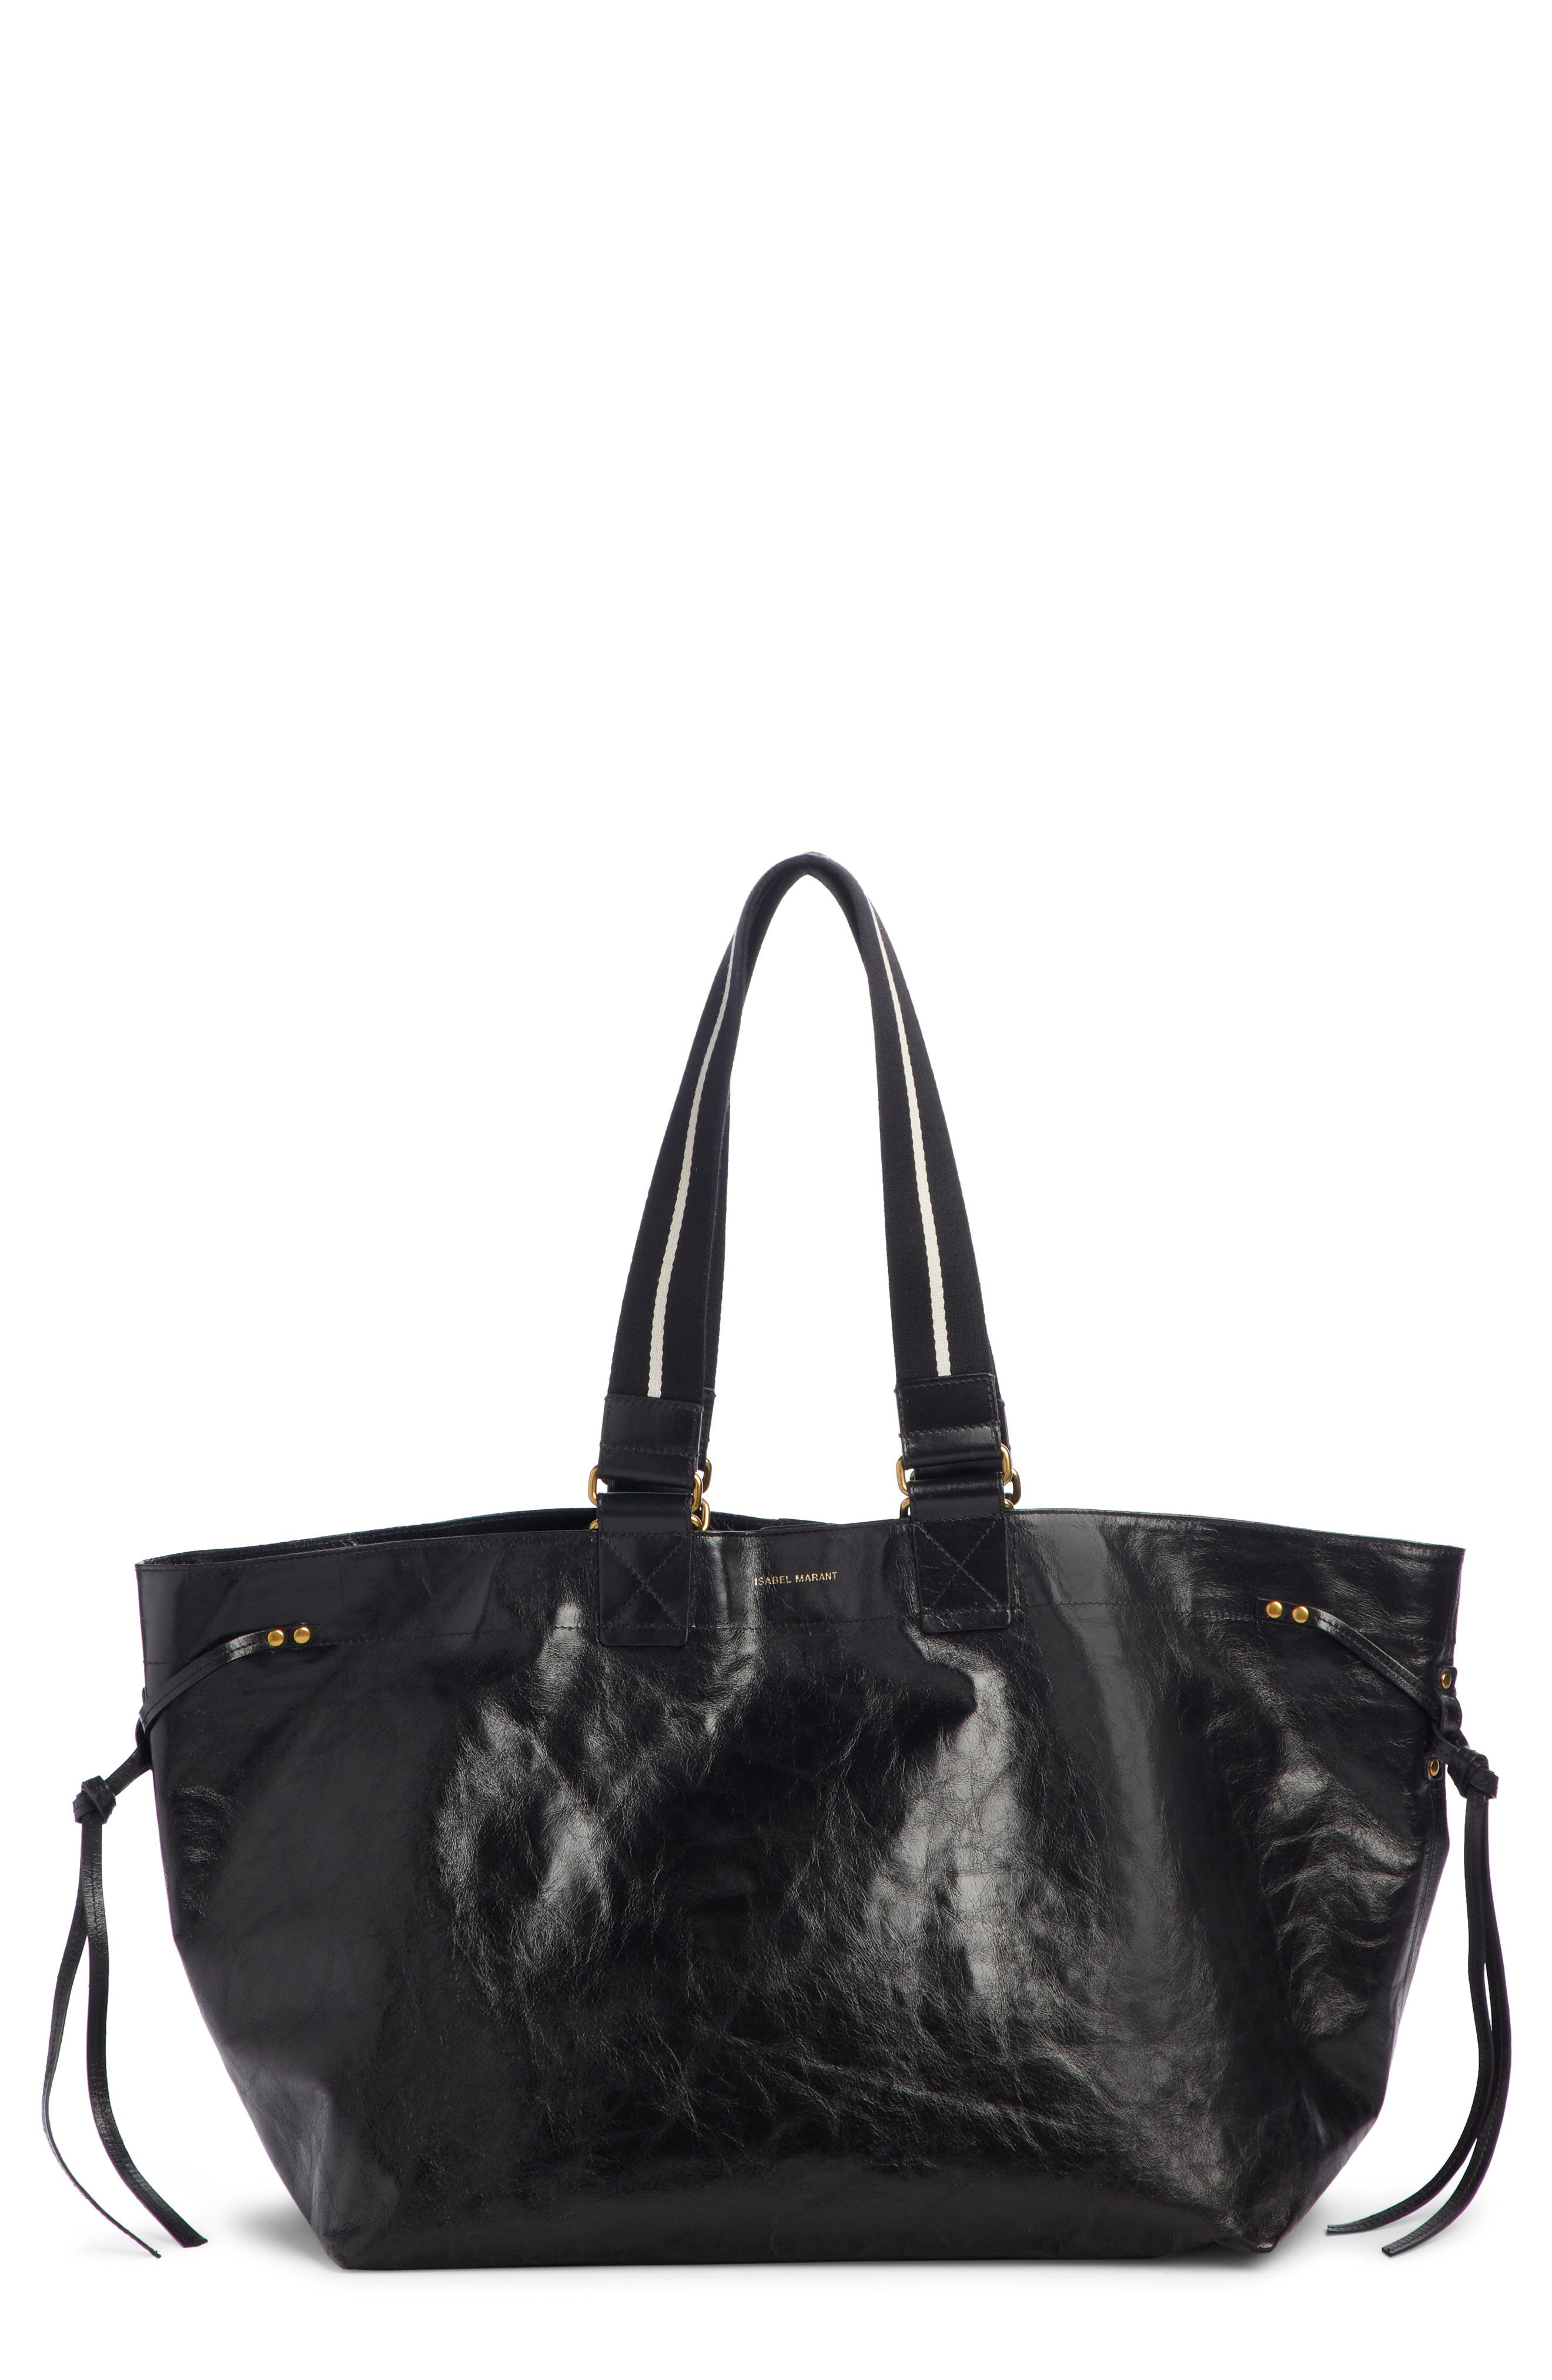 Wardy New Leather Shopper,                             Main thumbnail 1, color,                             BLACK